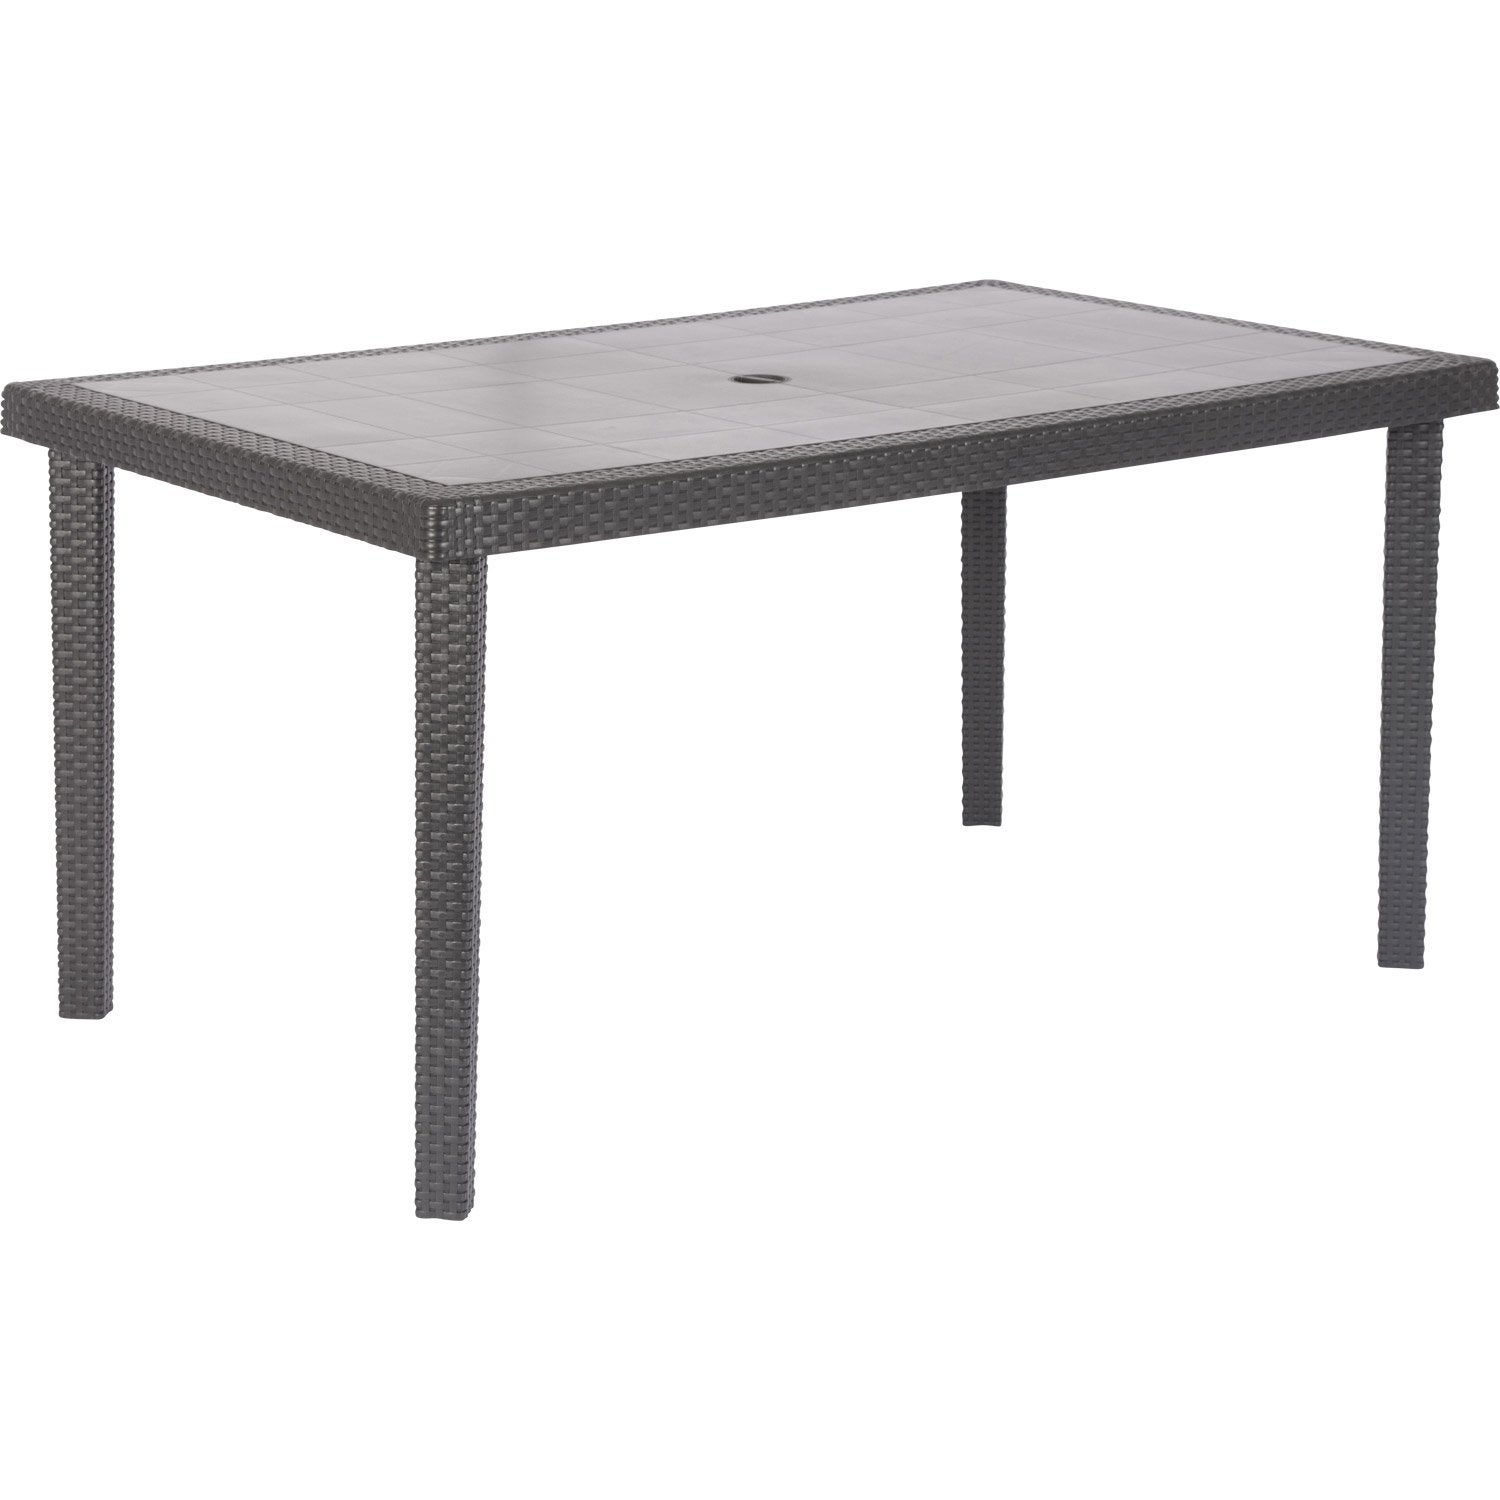 Table de jardin boh me rectangulaire anthracite 6 personnes leroy merlin - Table de jardin lumineuse ...